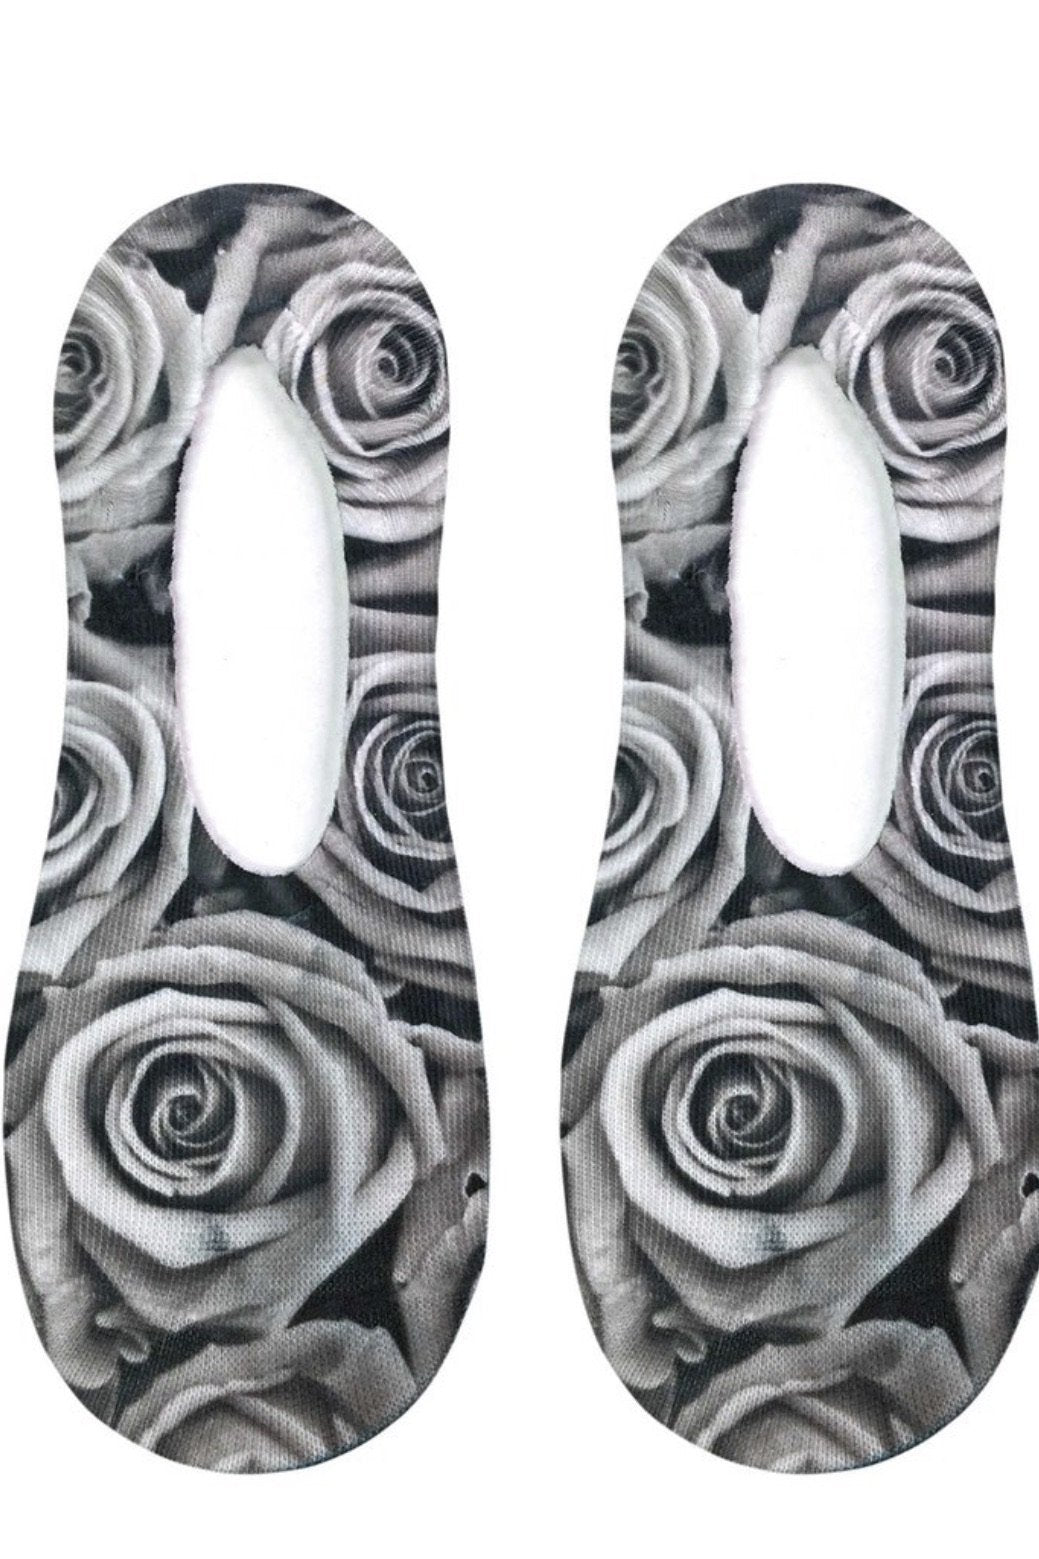 Black and White Roses GIFT/OTHER K.Lane's Boutique